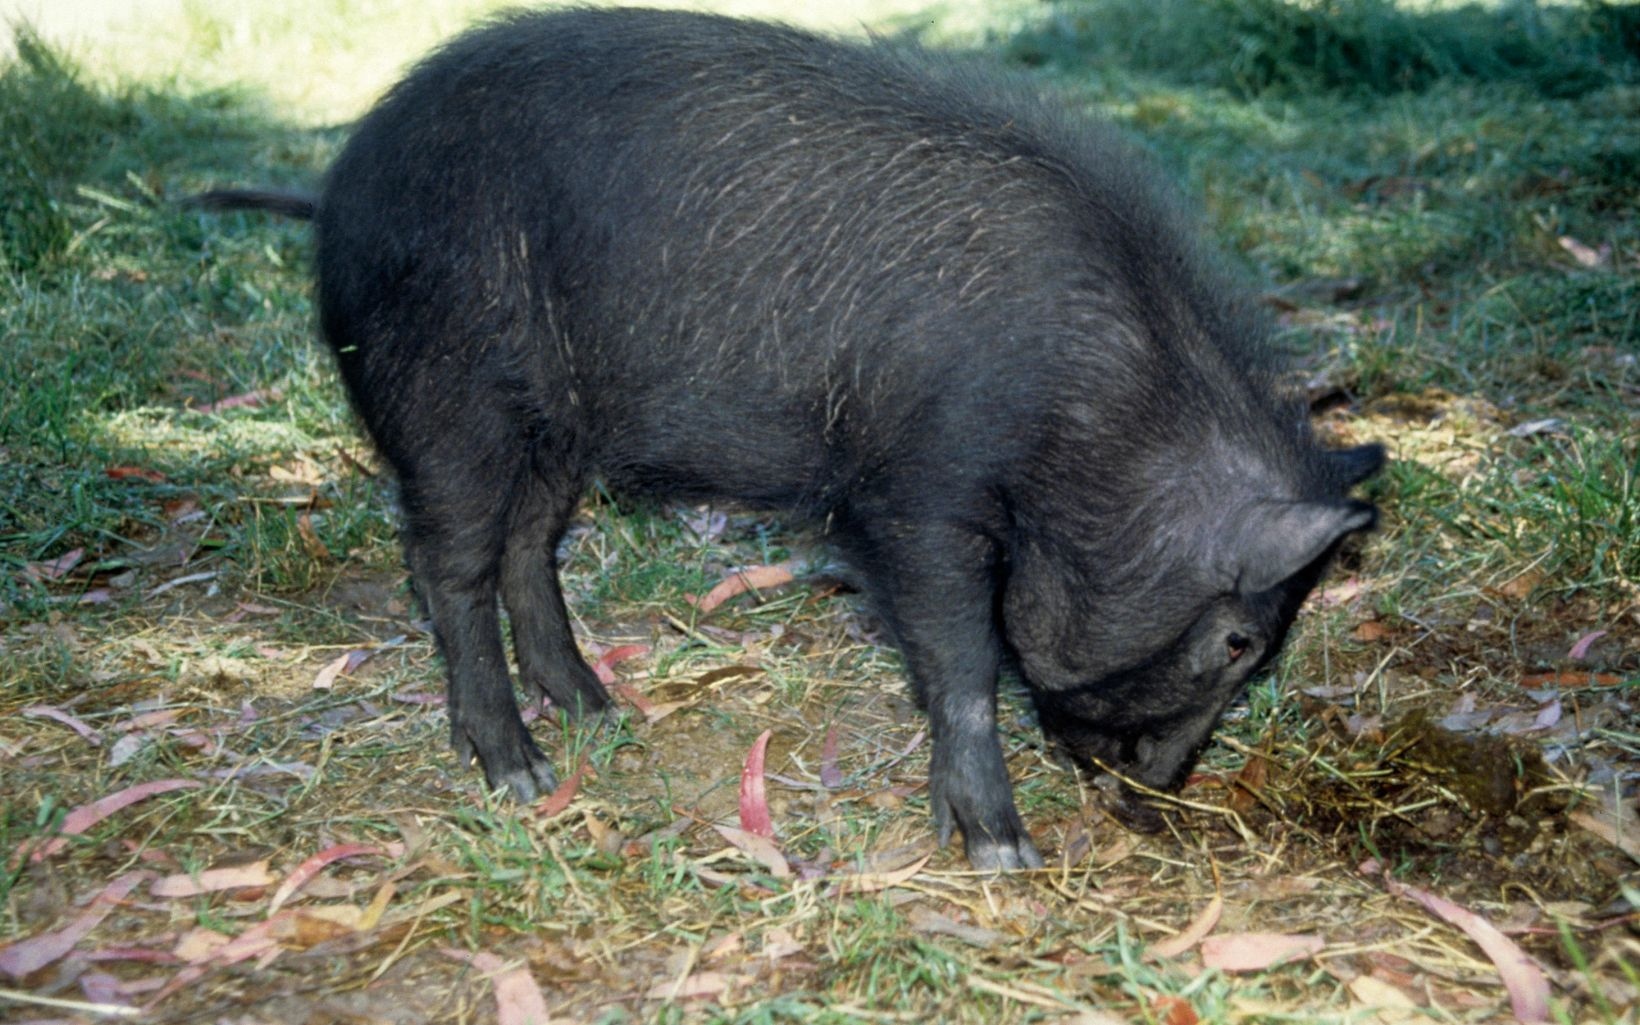 A feral hog roots into the dirt in search of food.